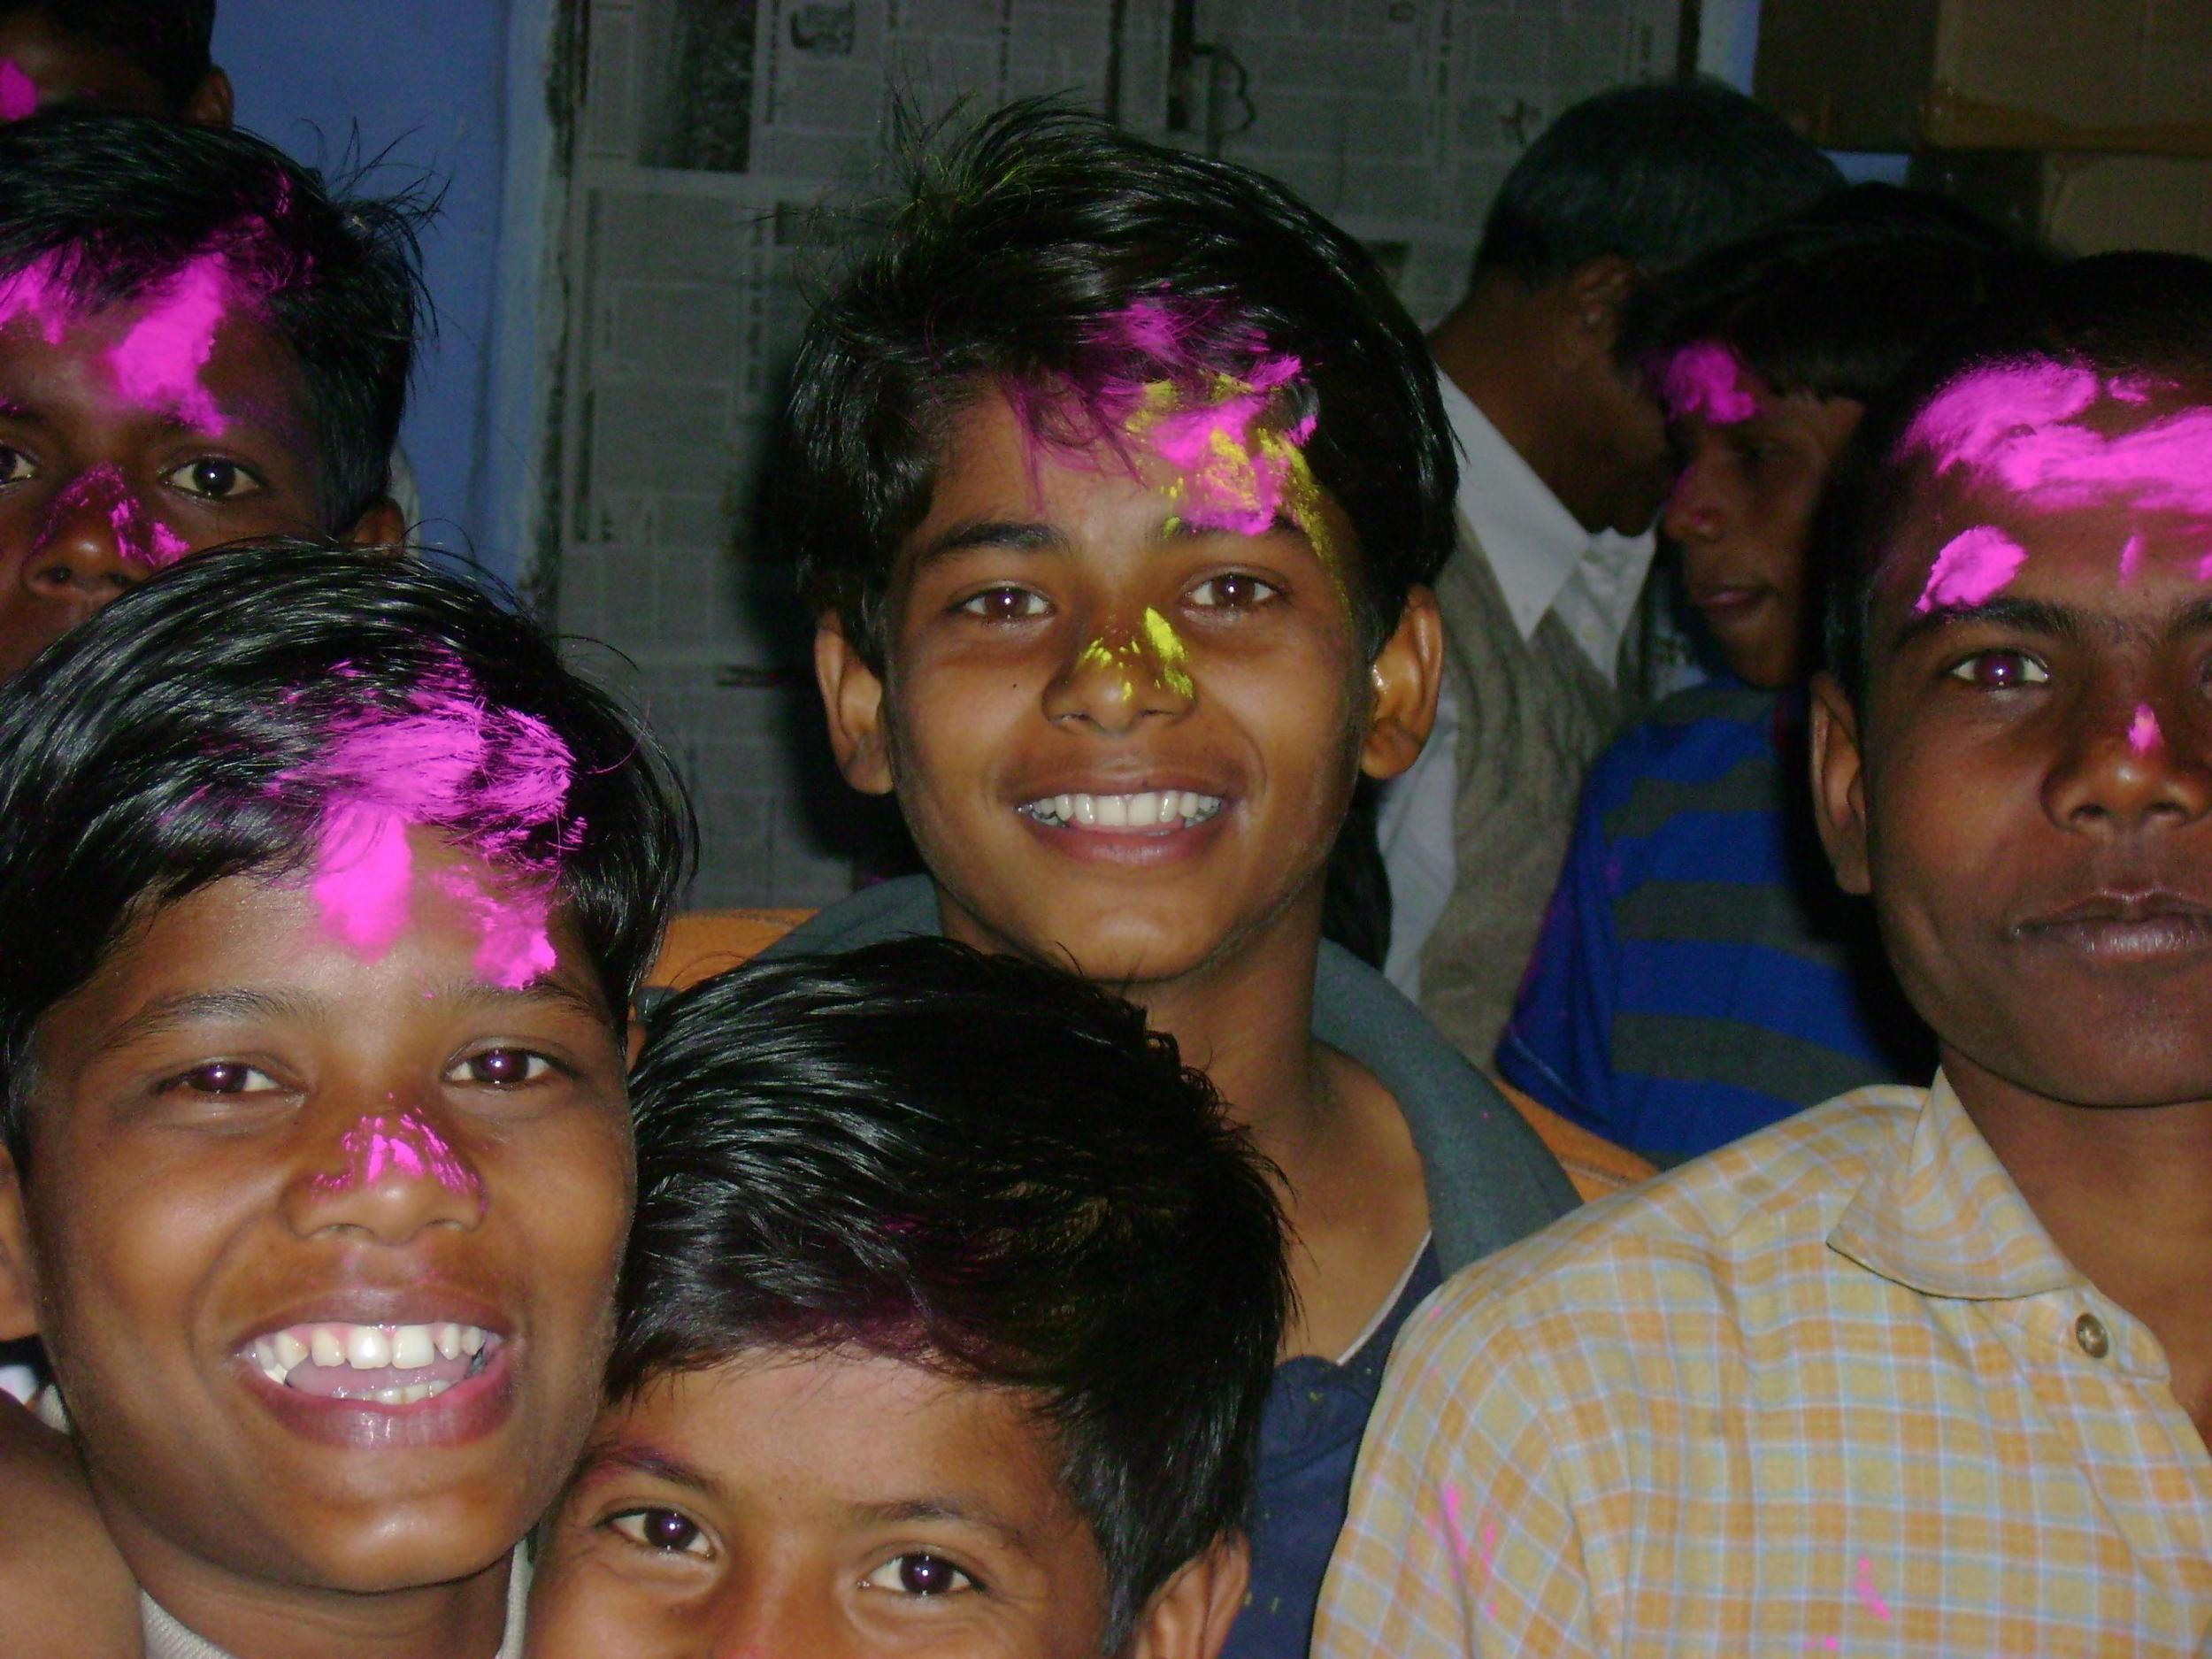 Boys from the Children of Mother Earth project celebrating the festival of Holi.